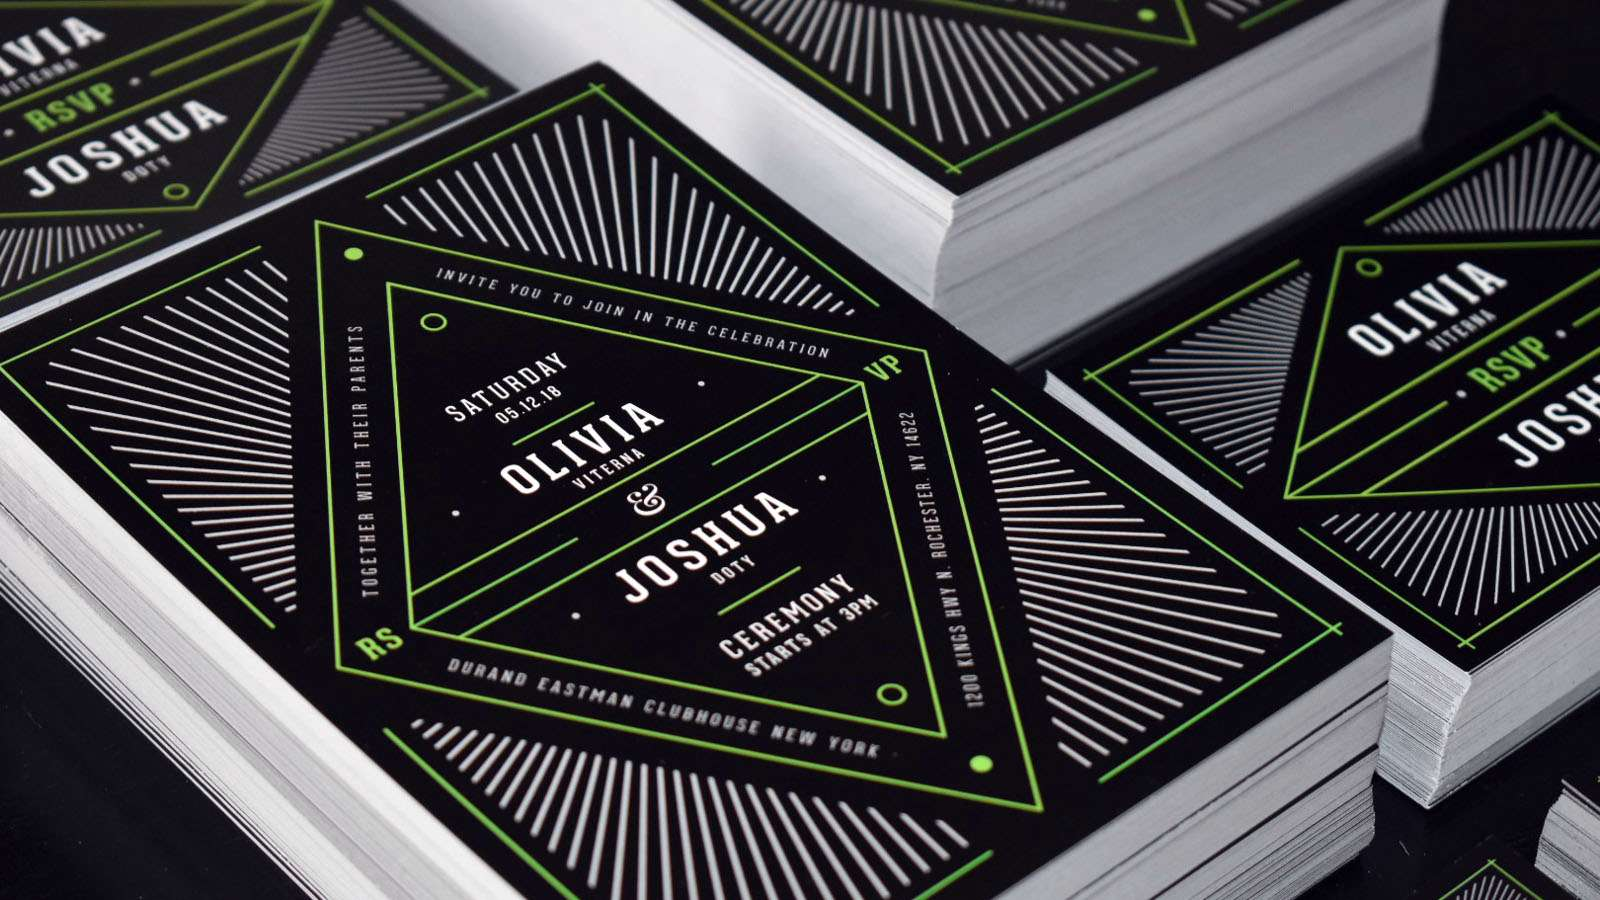 Invitation design for a wedding using black and green.